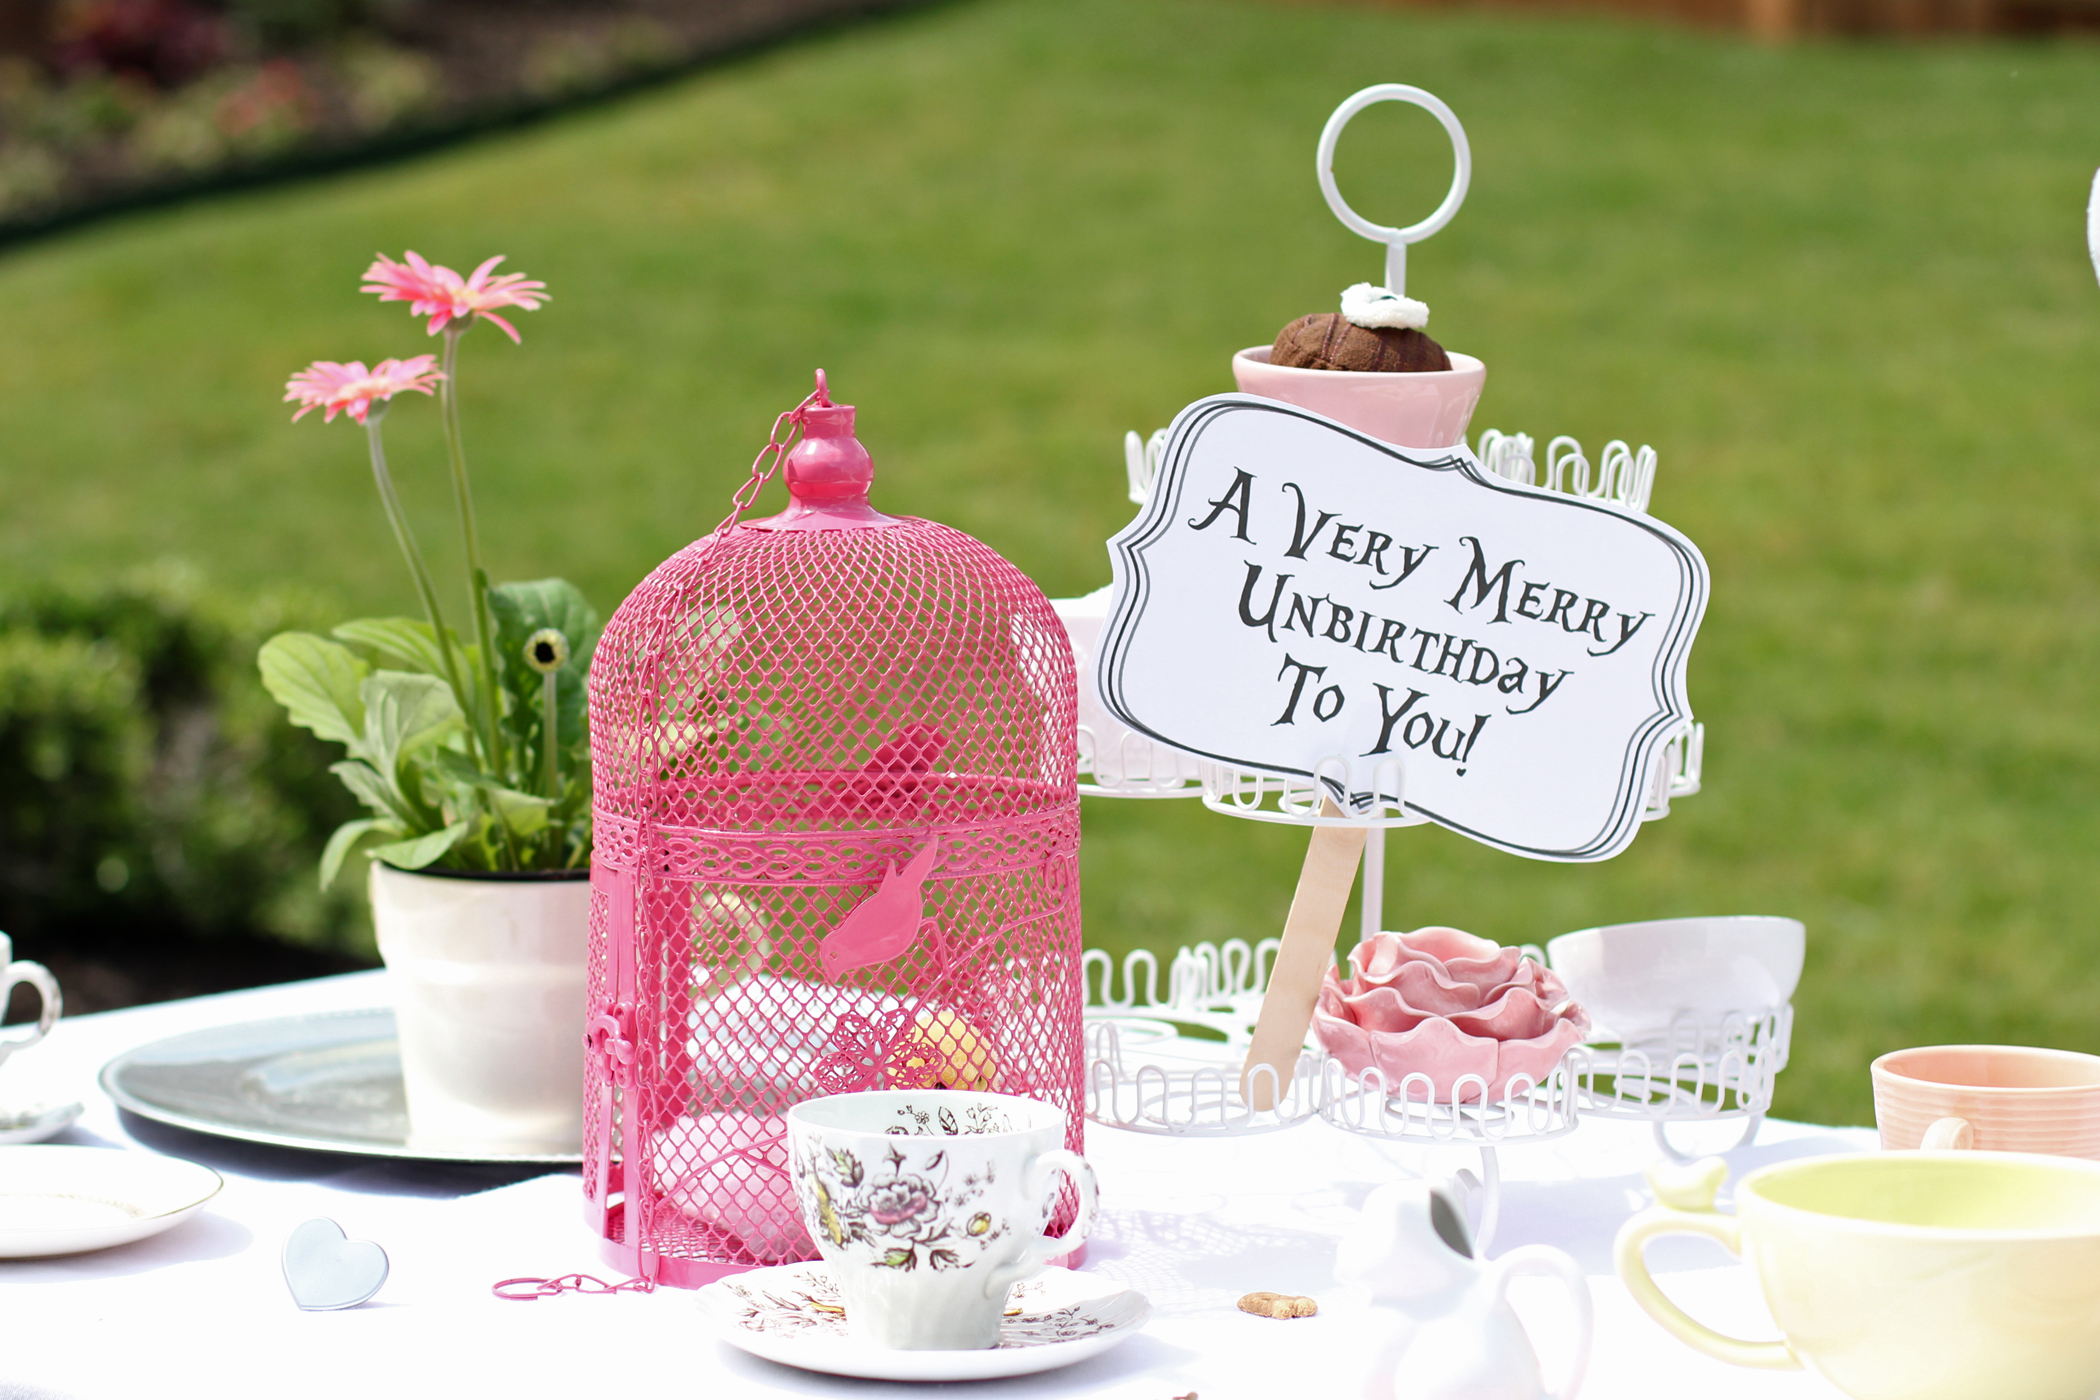 Mad hatter tea party decoration ideas - Mad Hatter Tea Party Decoration Ideas 48